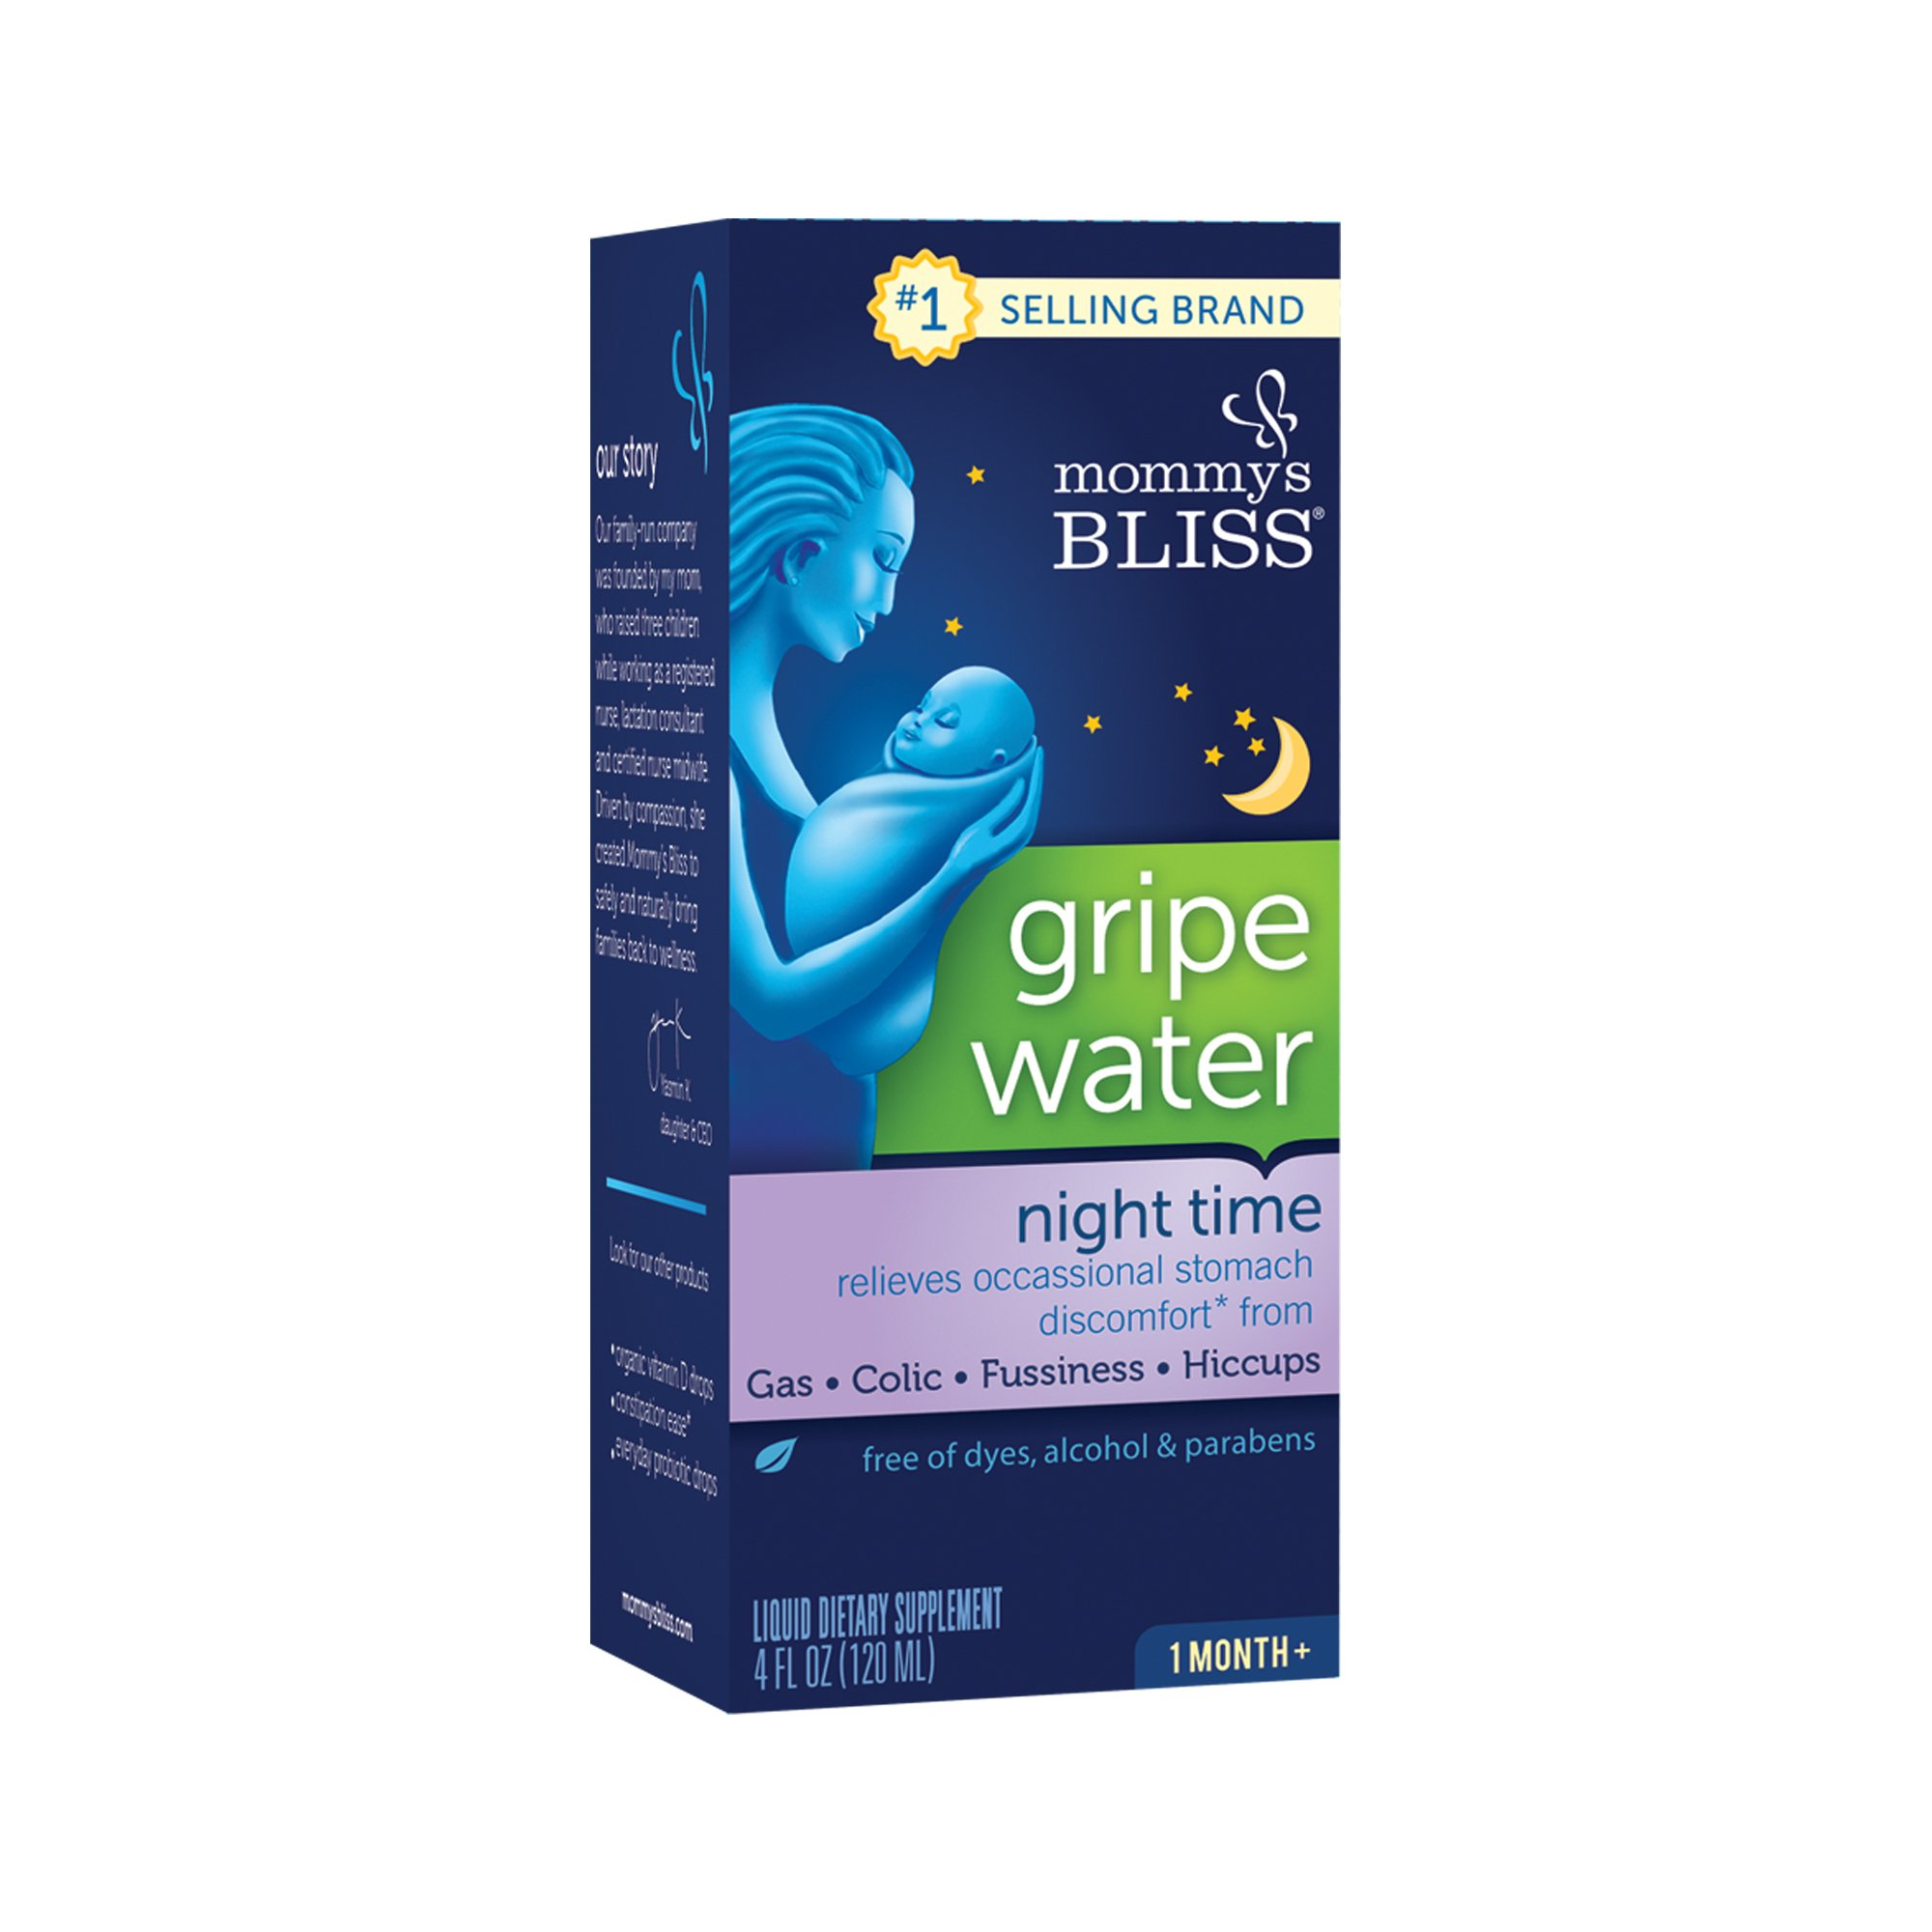 Mommy's Bliss Gripe Water Night Time, 4 Fluid Ounce